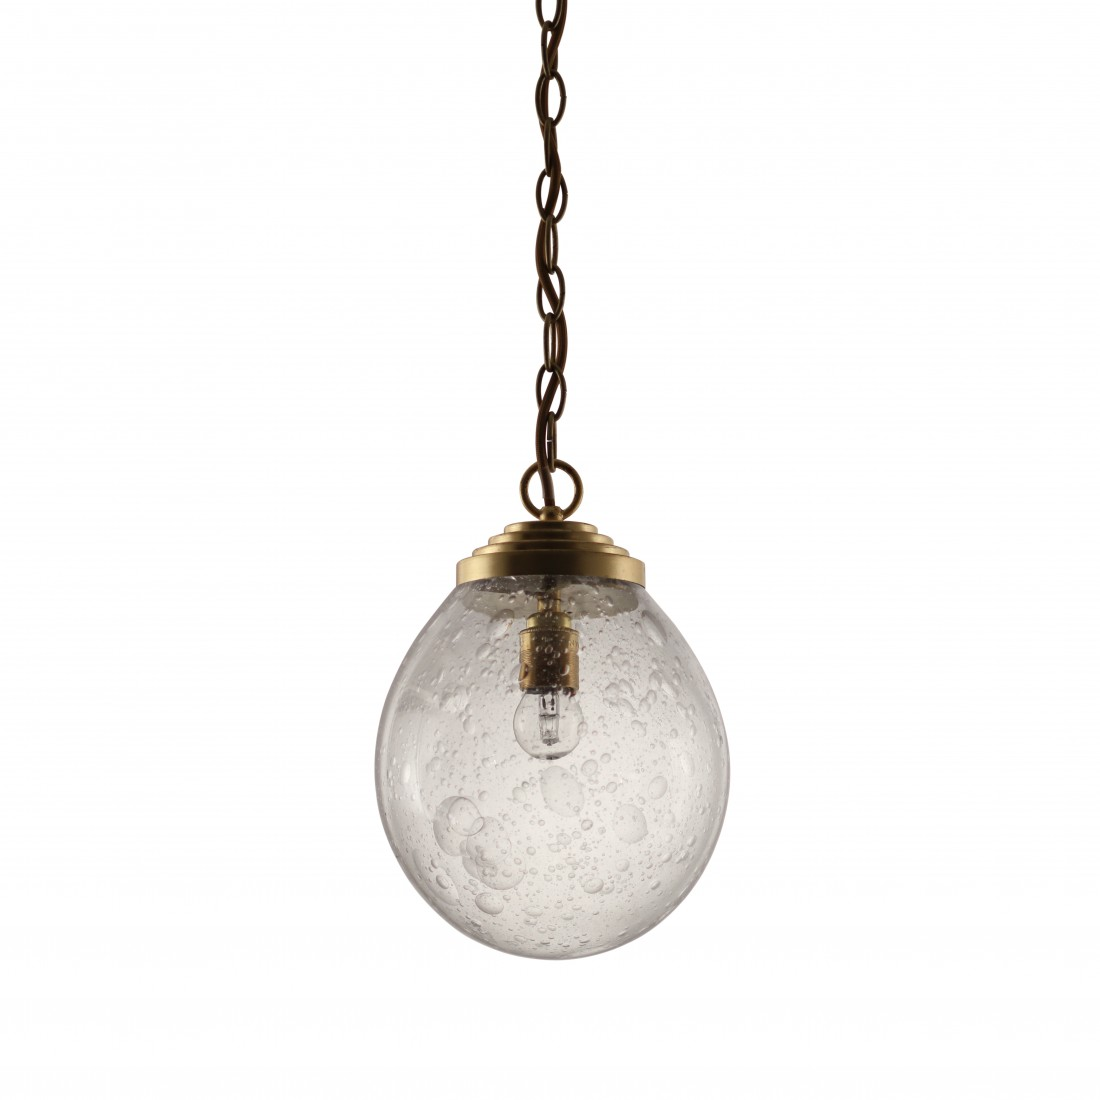 Small orb pendant mcl43s ceiling lights ceiling light porta resources aloadofball Choice Image